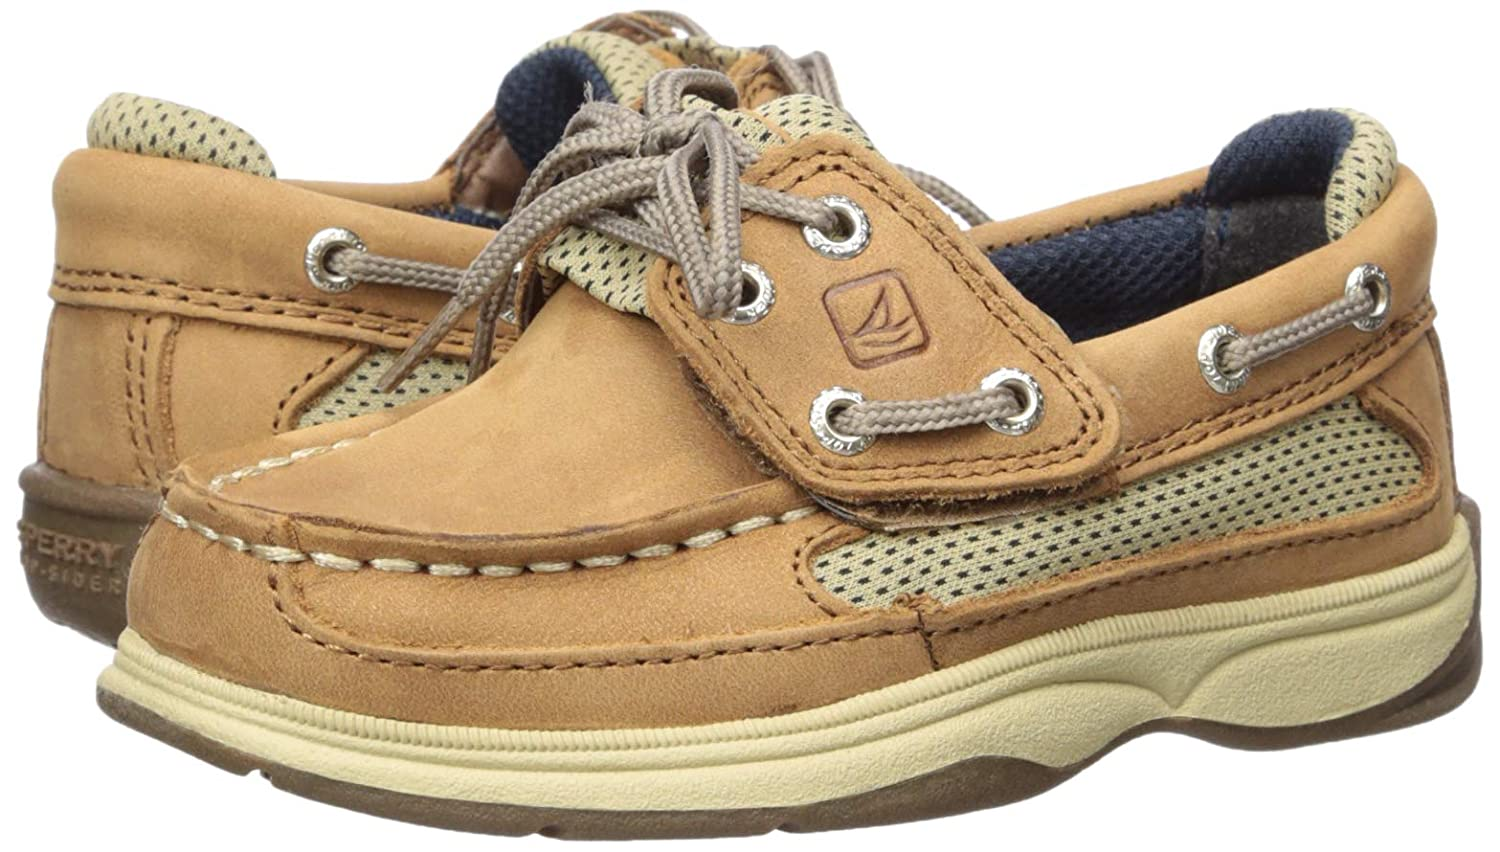 Toddler//Little Kid Sperry Top-Sider Lanyard CB Boat Shoe